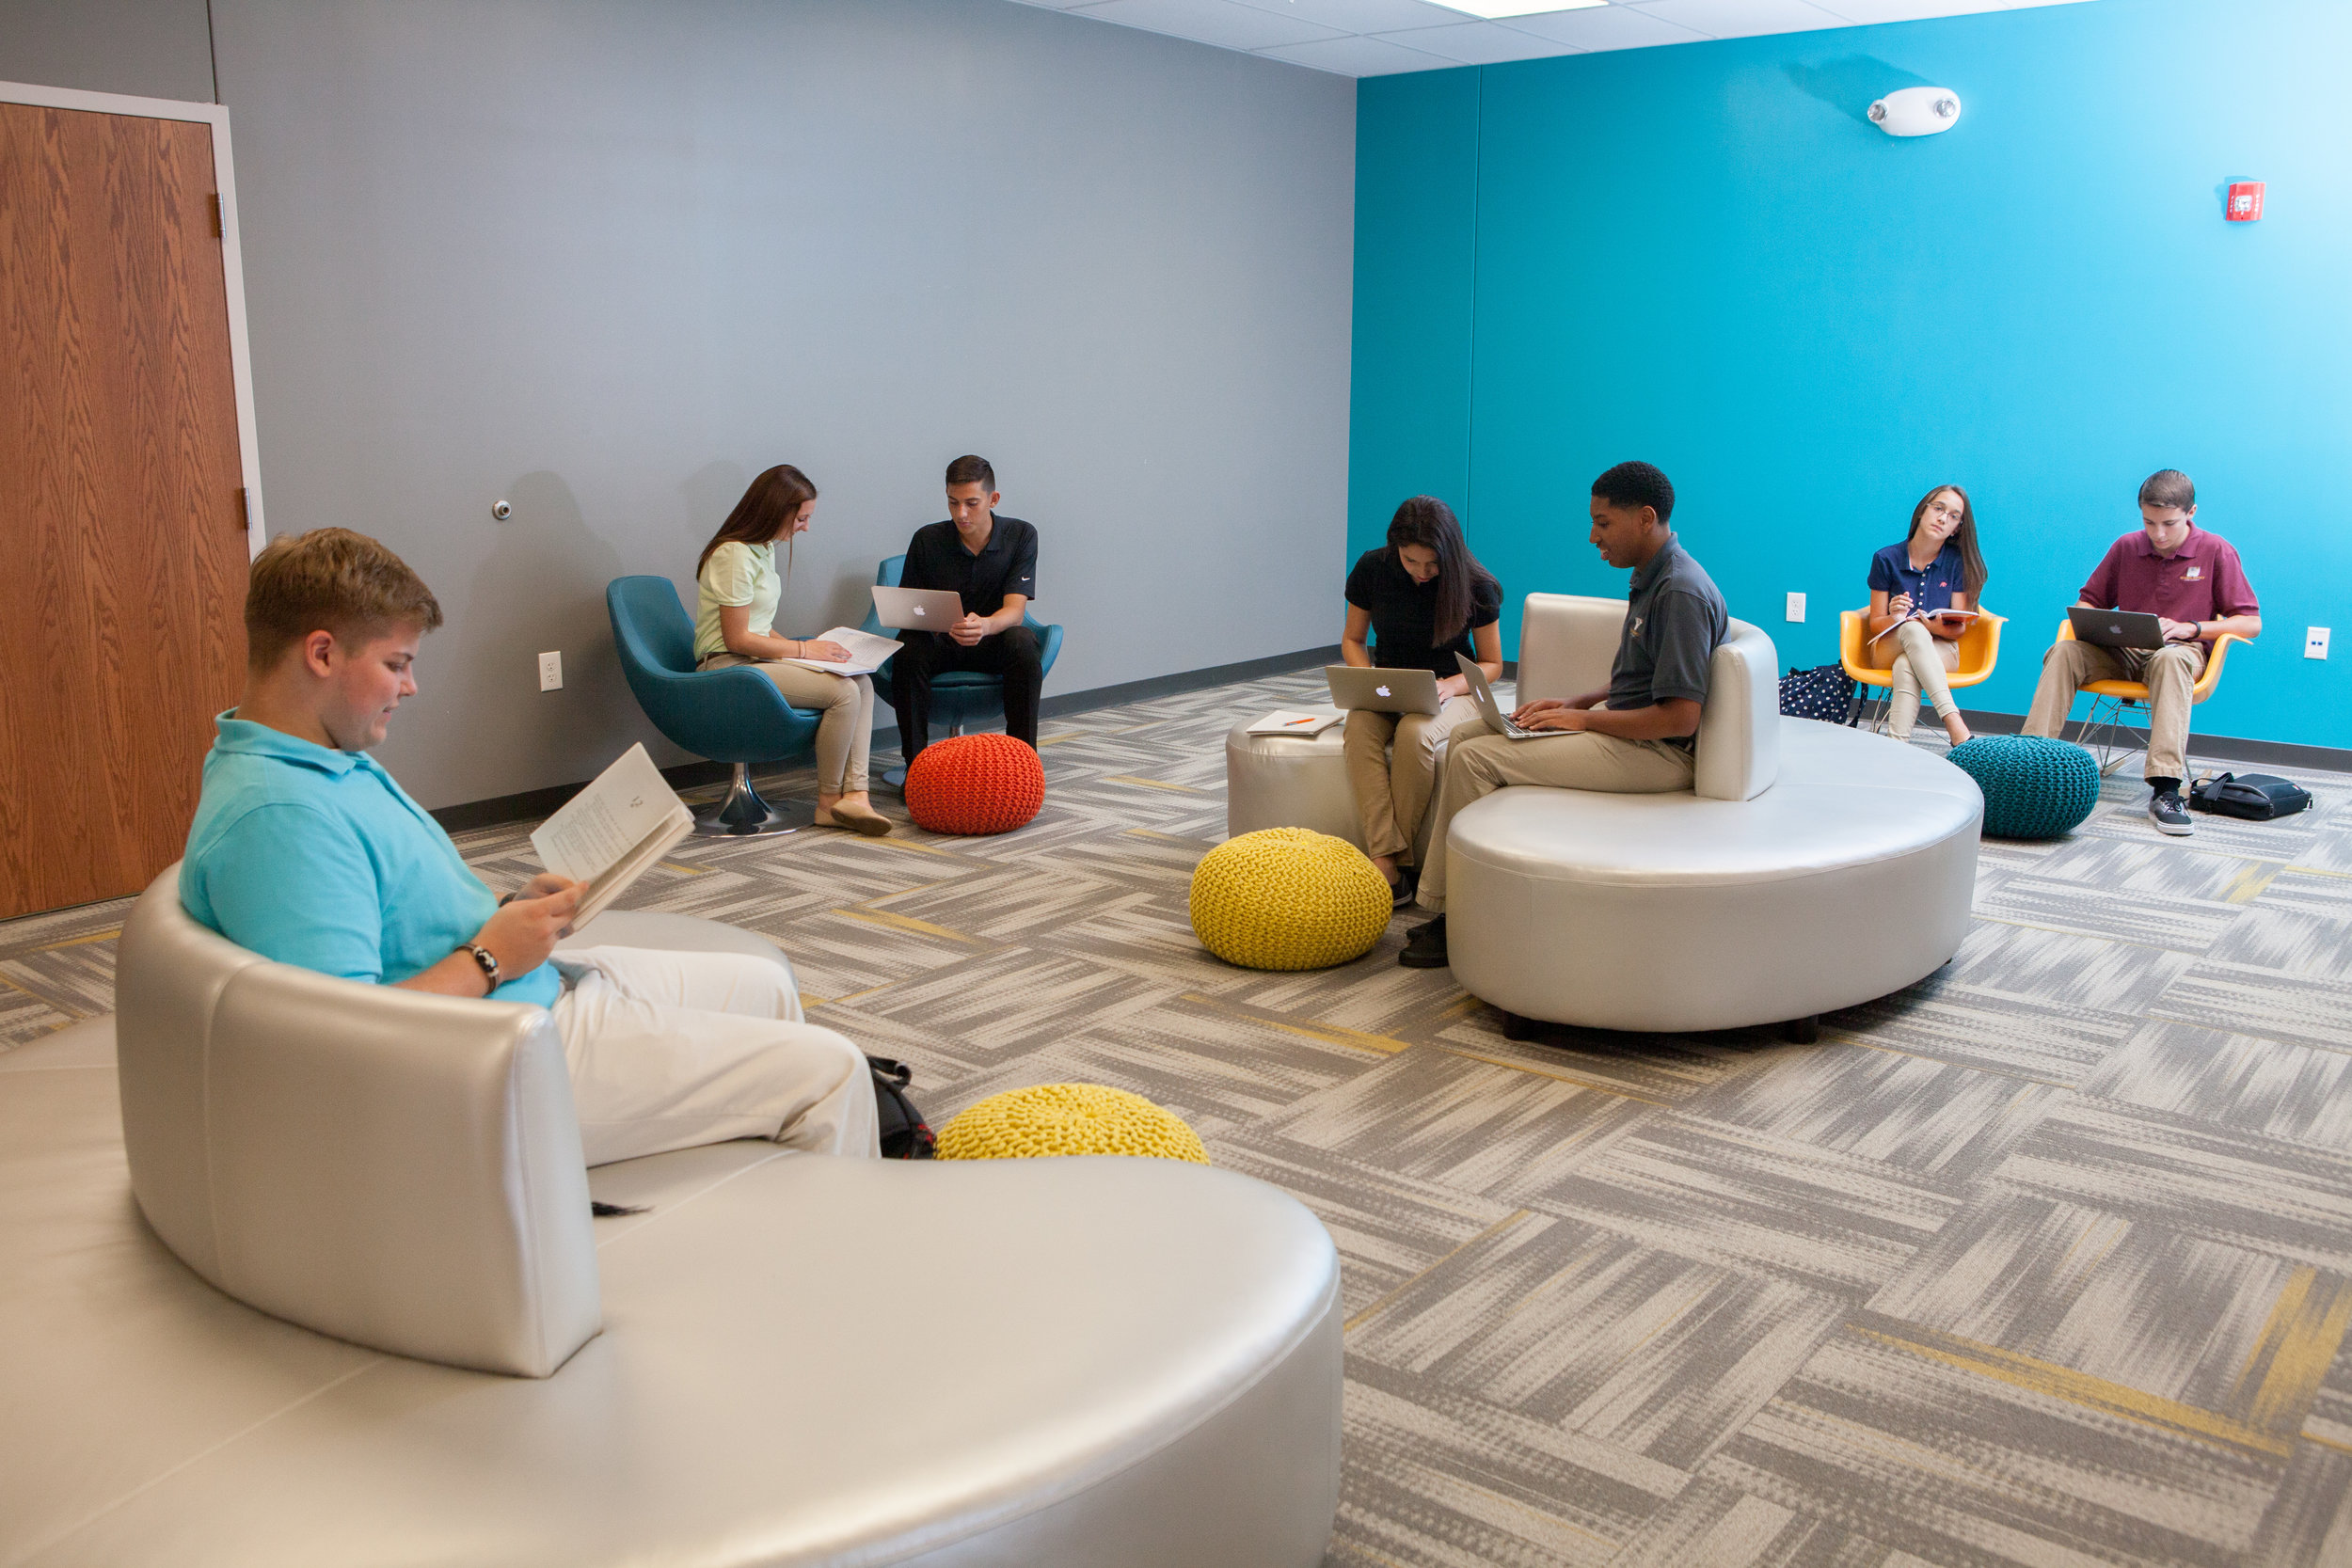 Pictured: Global Impact STEM Academy lounge area with students.